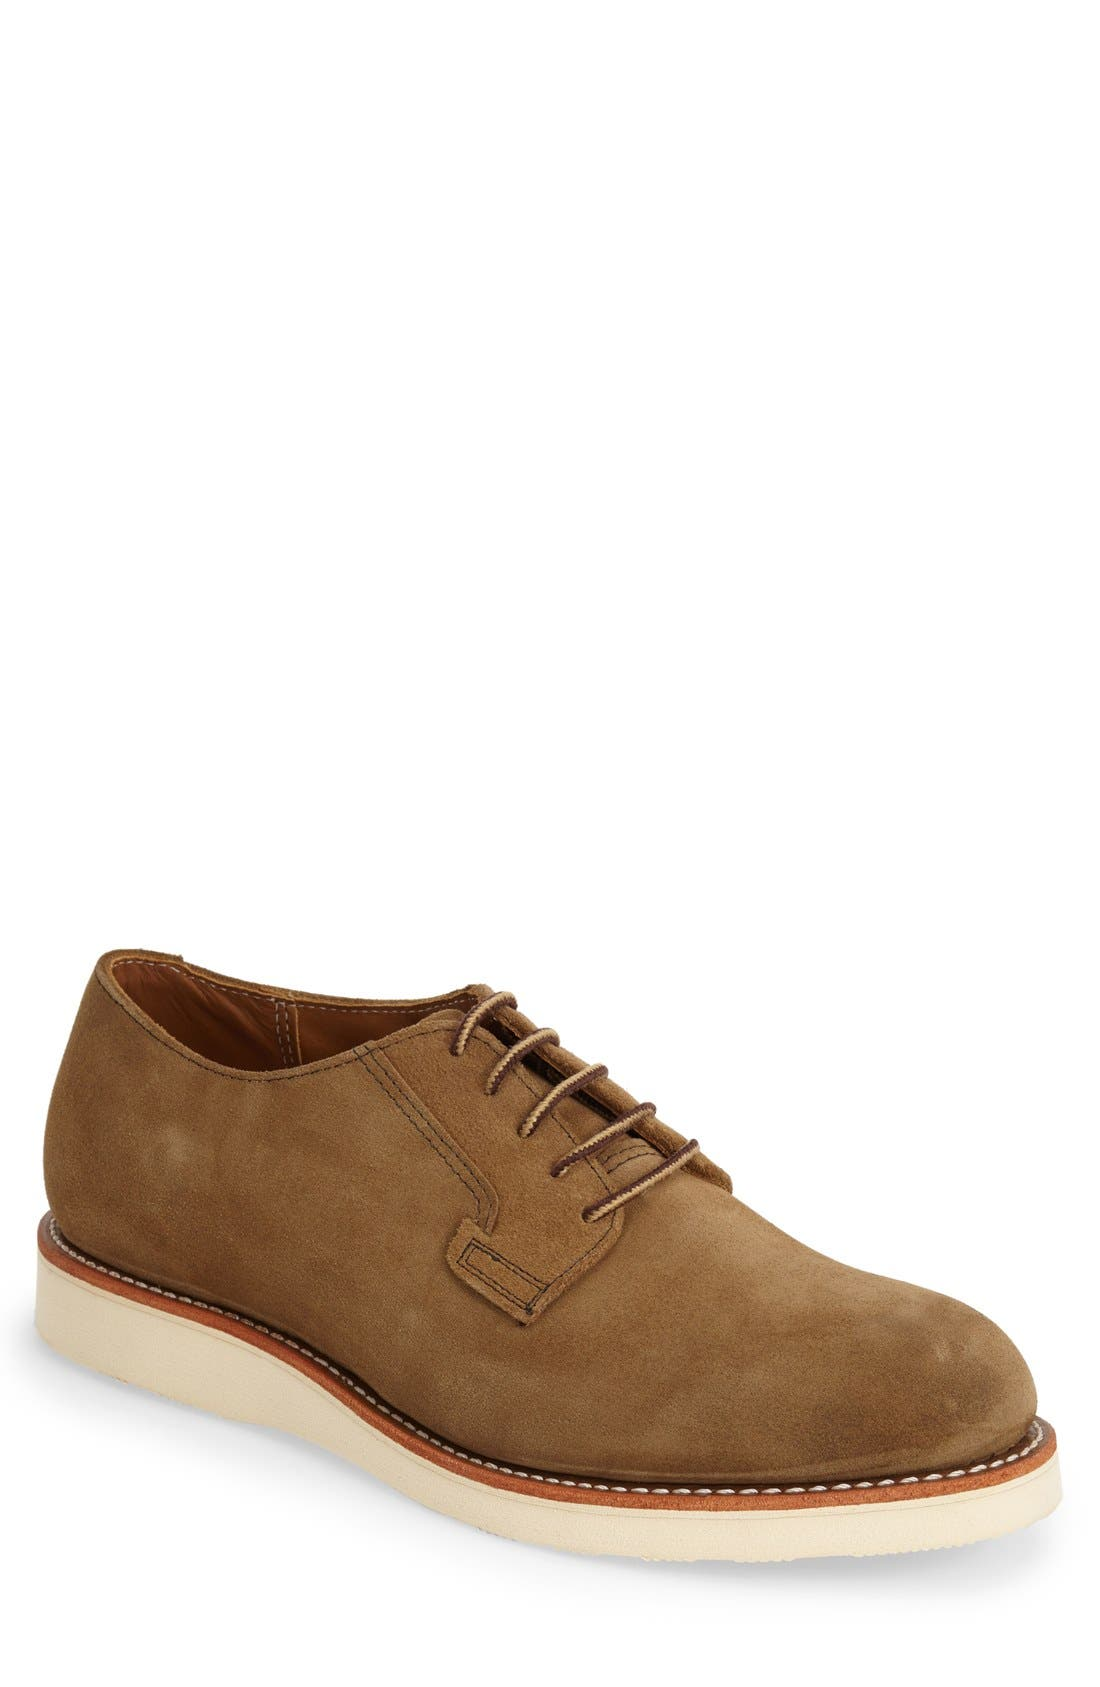 Alternate Image 1 Selected - Red Wing 'Postman' Oxford (Online Only)